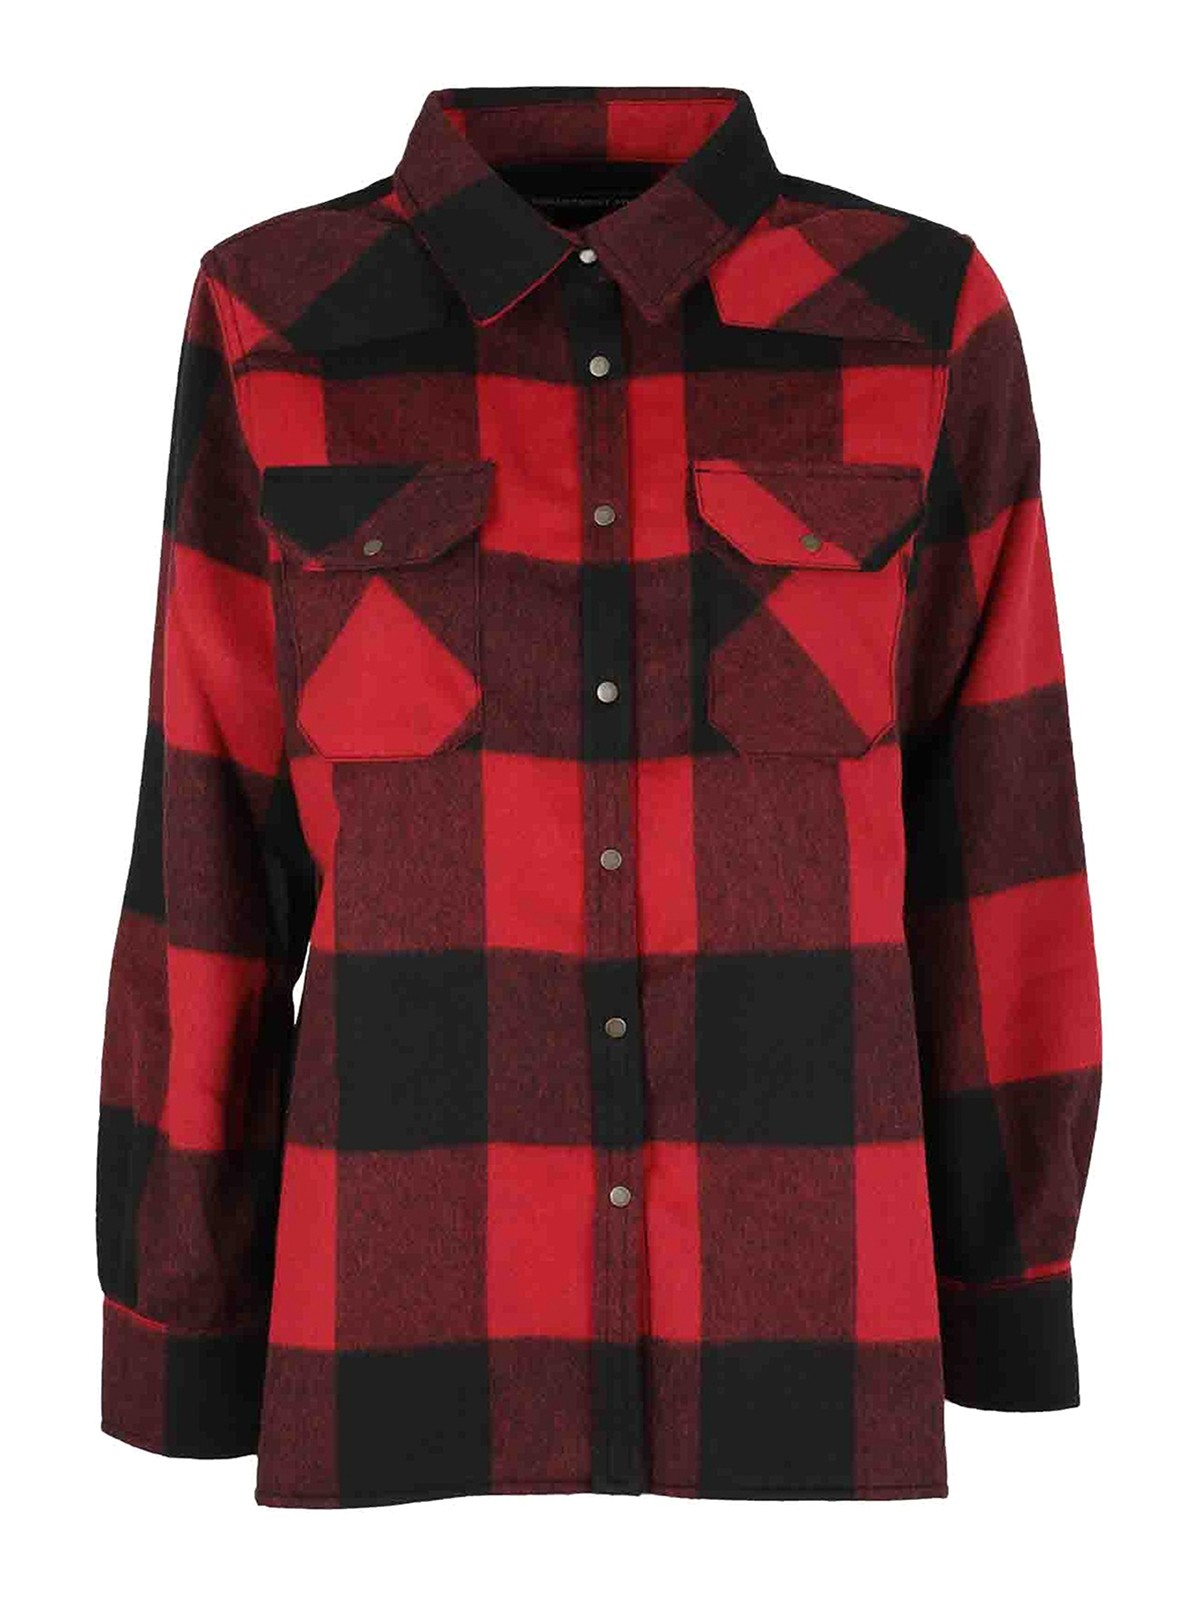 Department 5 CHECKED FLANNEL SHIRT